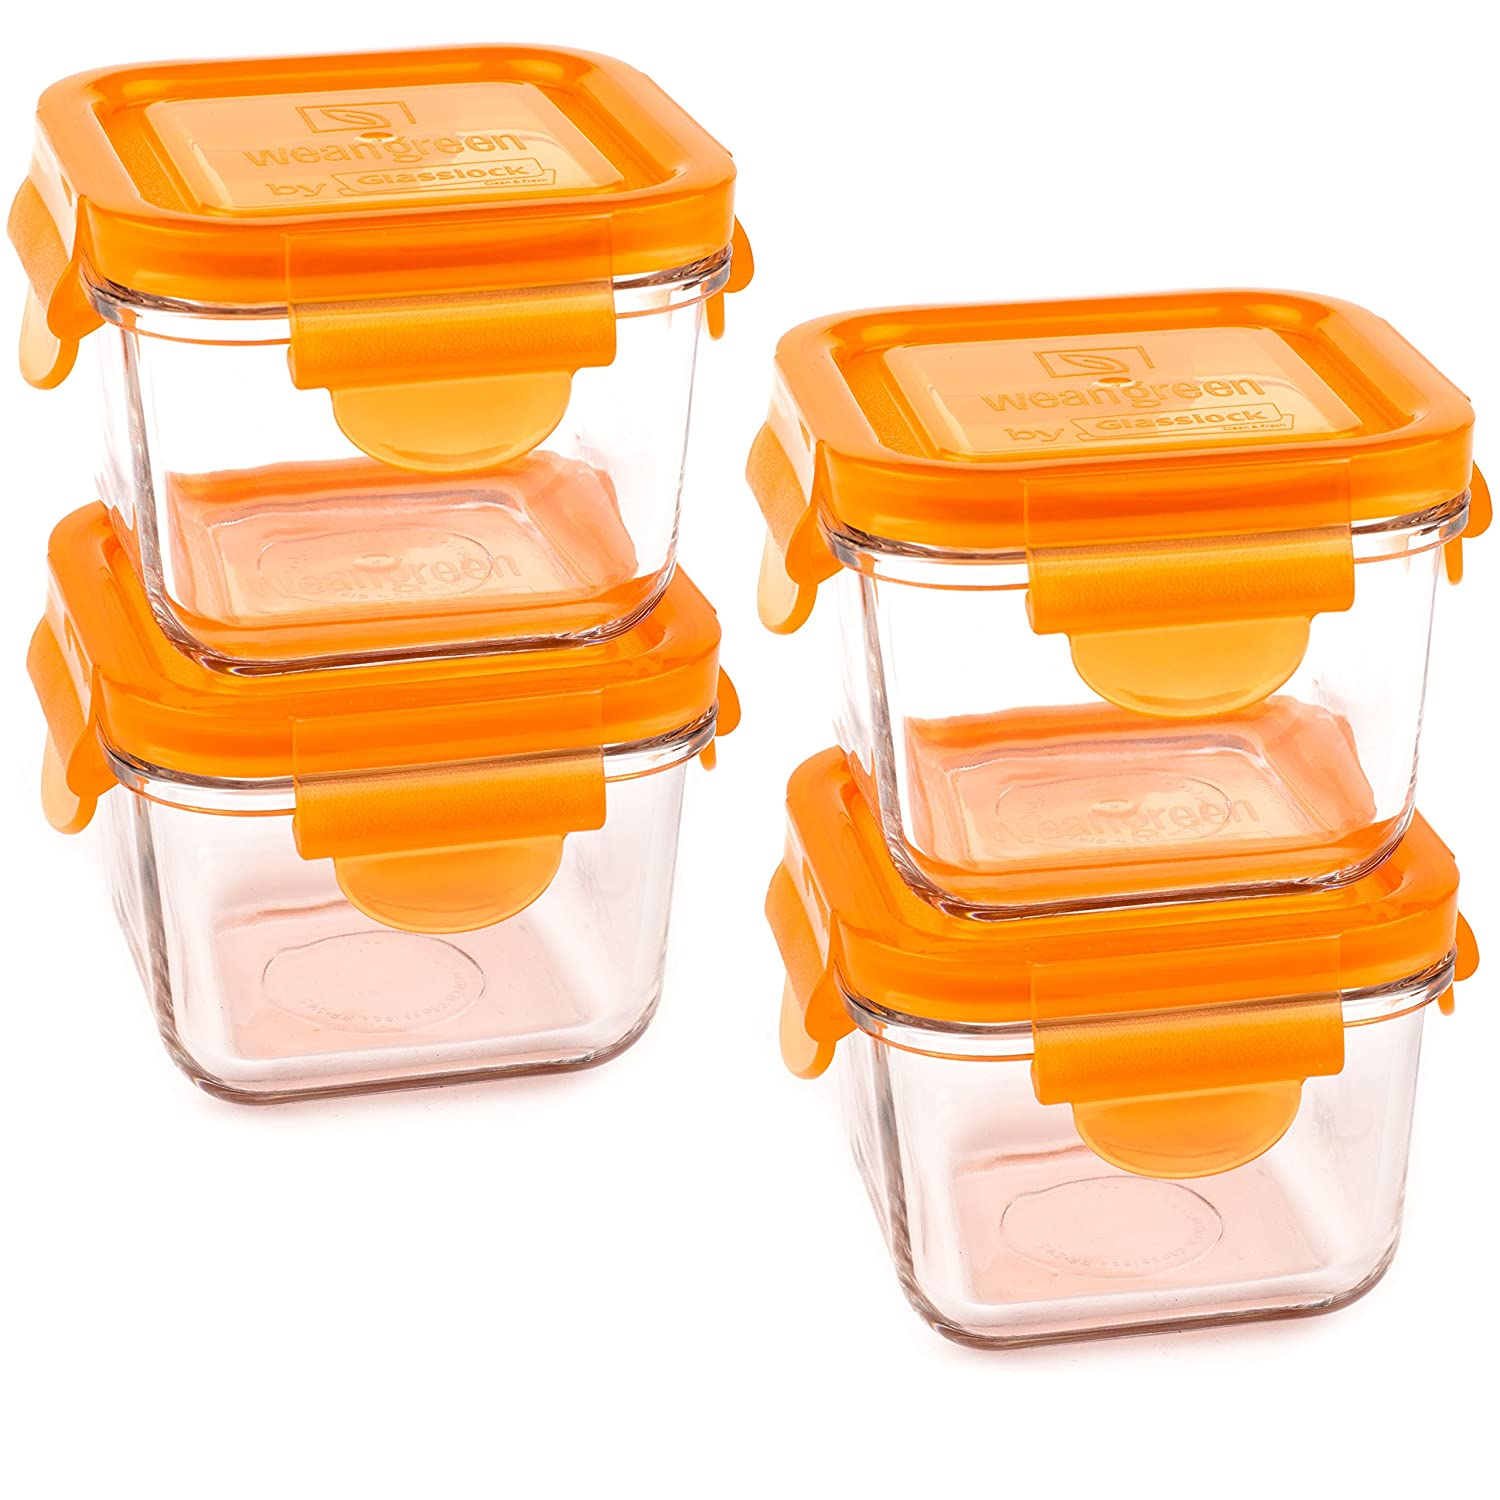 Wean Green Carrot Snack Cubes Reusable Food Storage Container Set